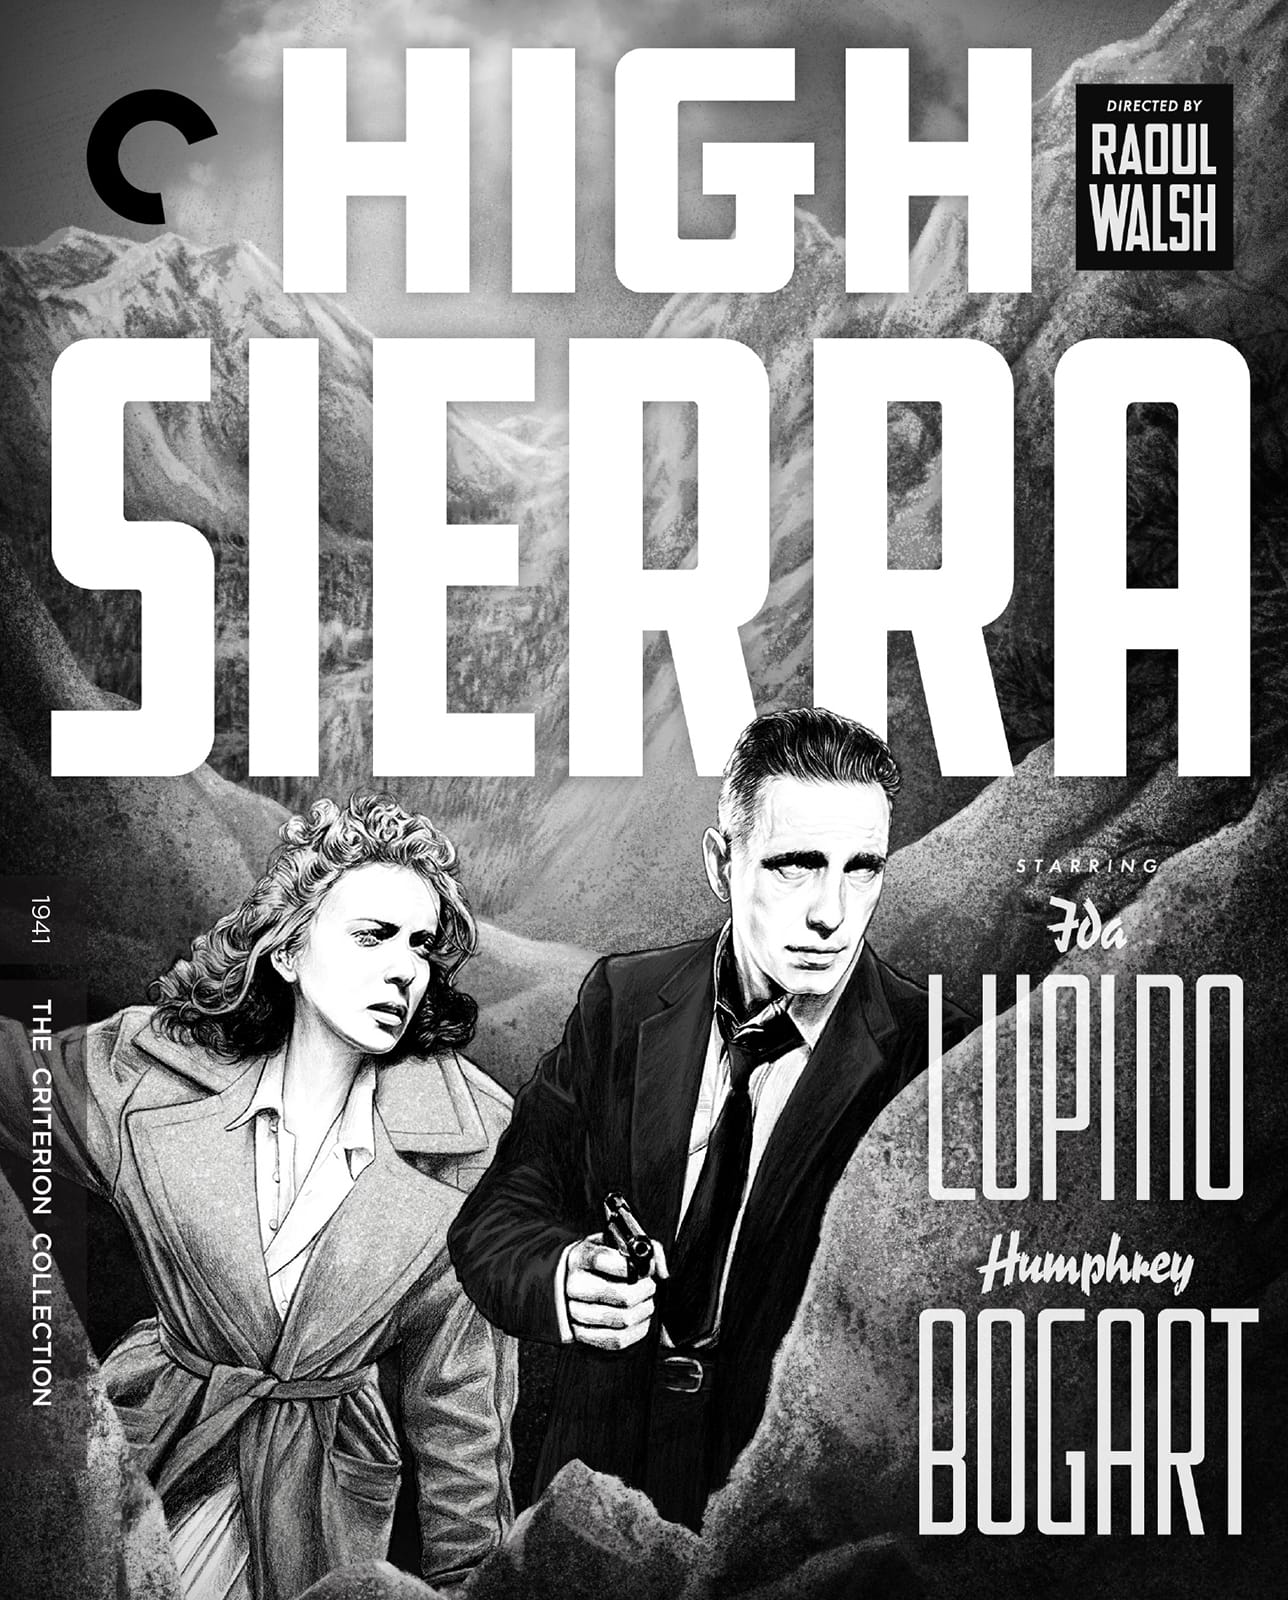 High Sierra (1941) | The Criterion Collection